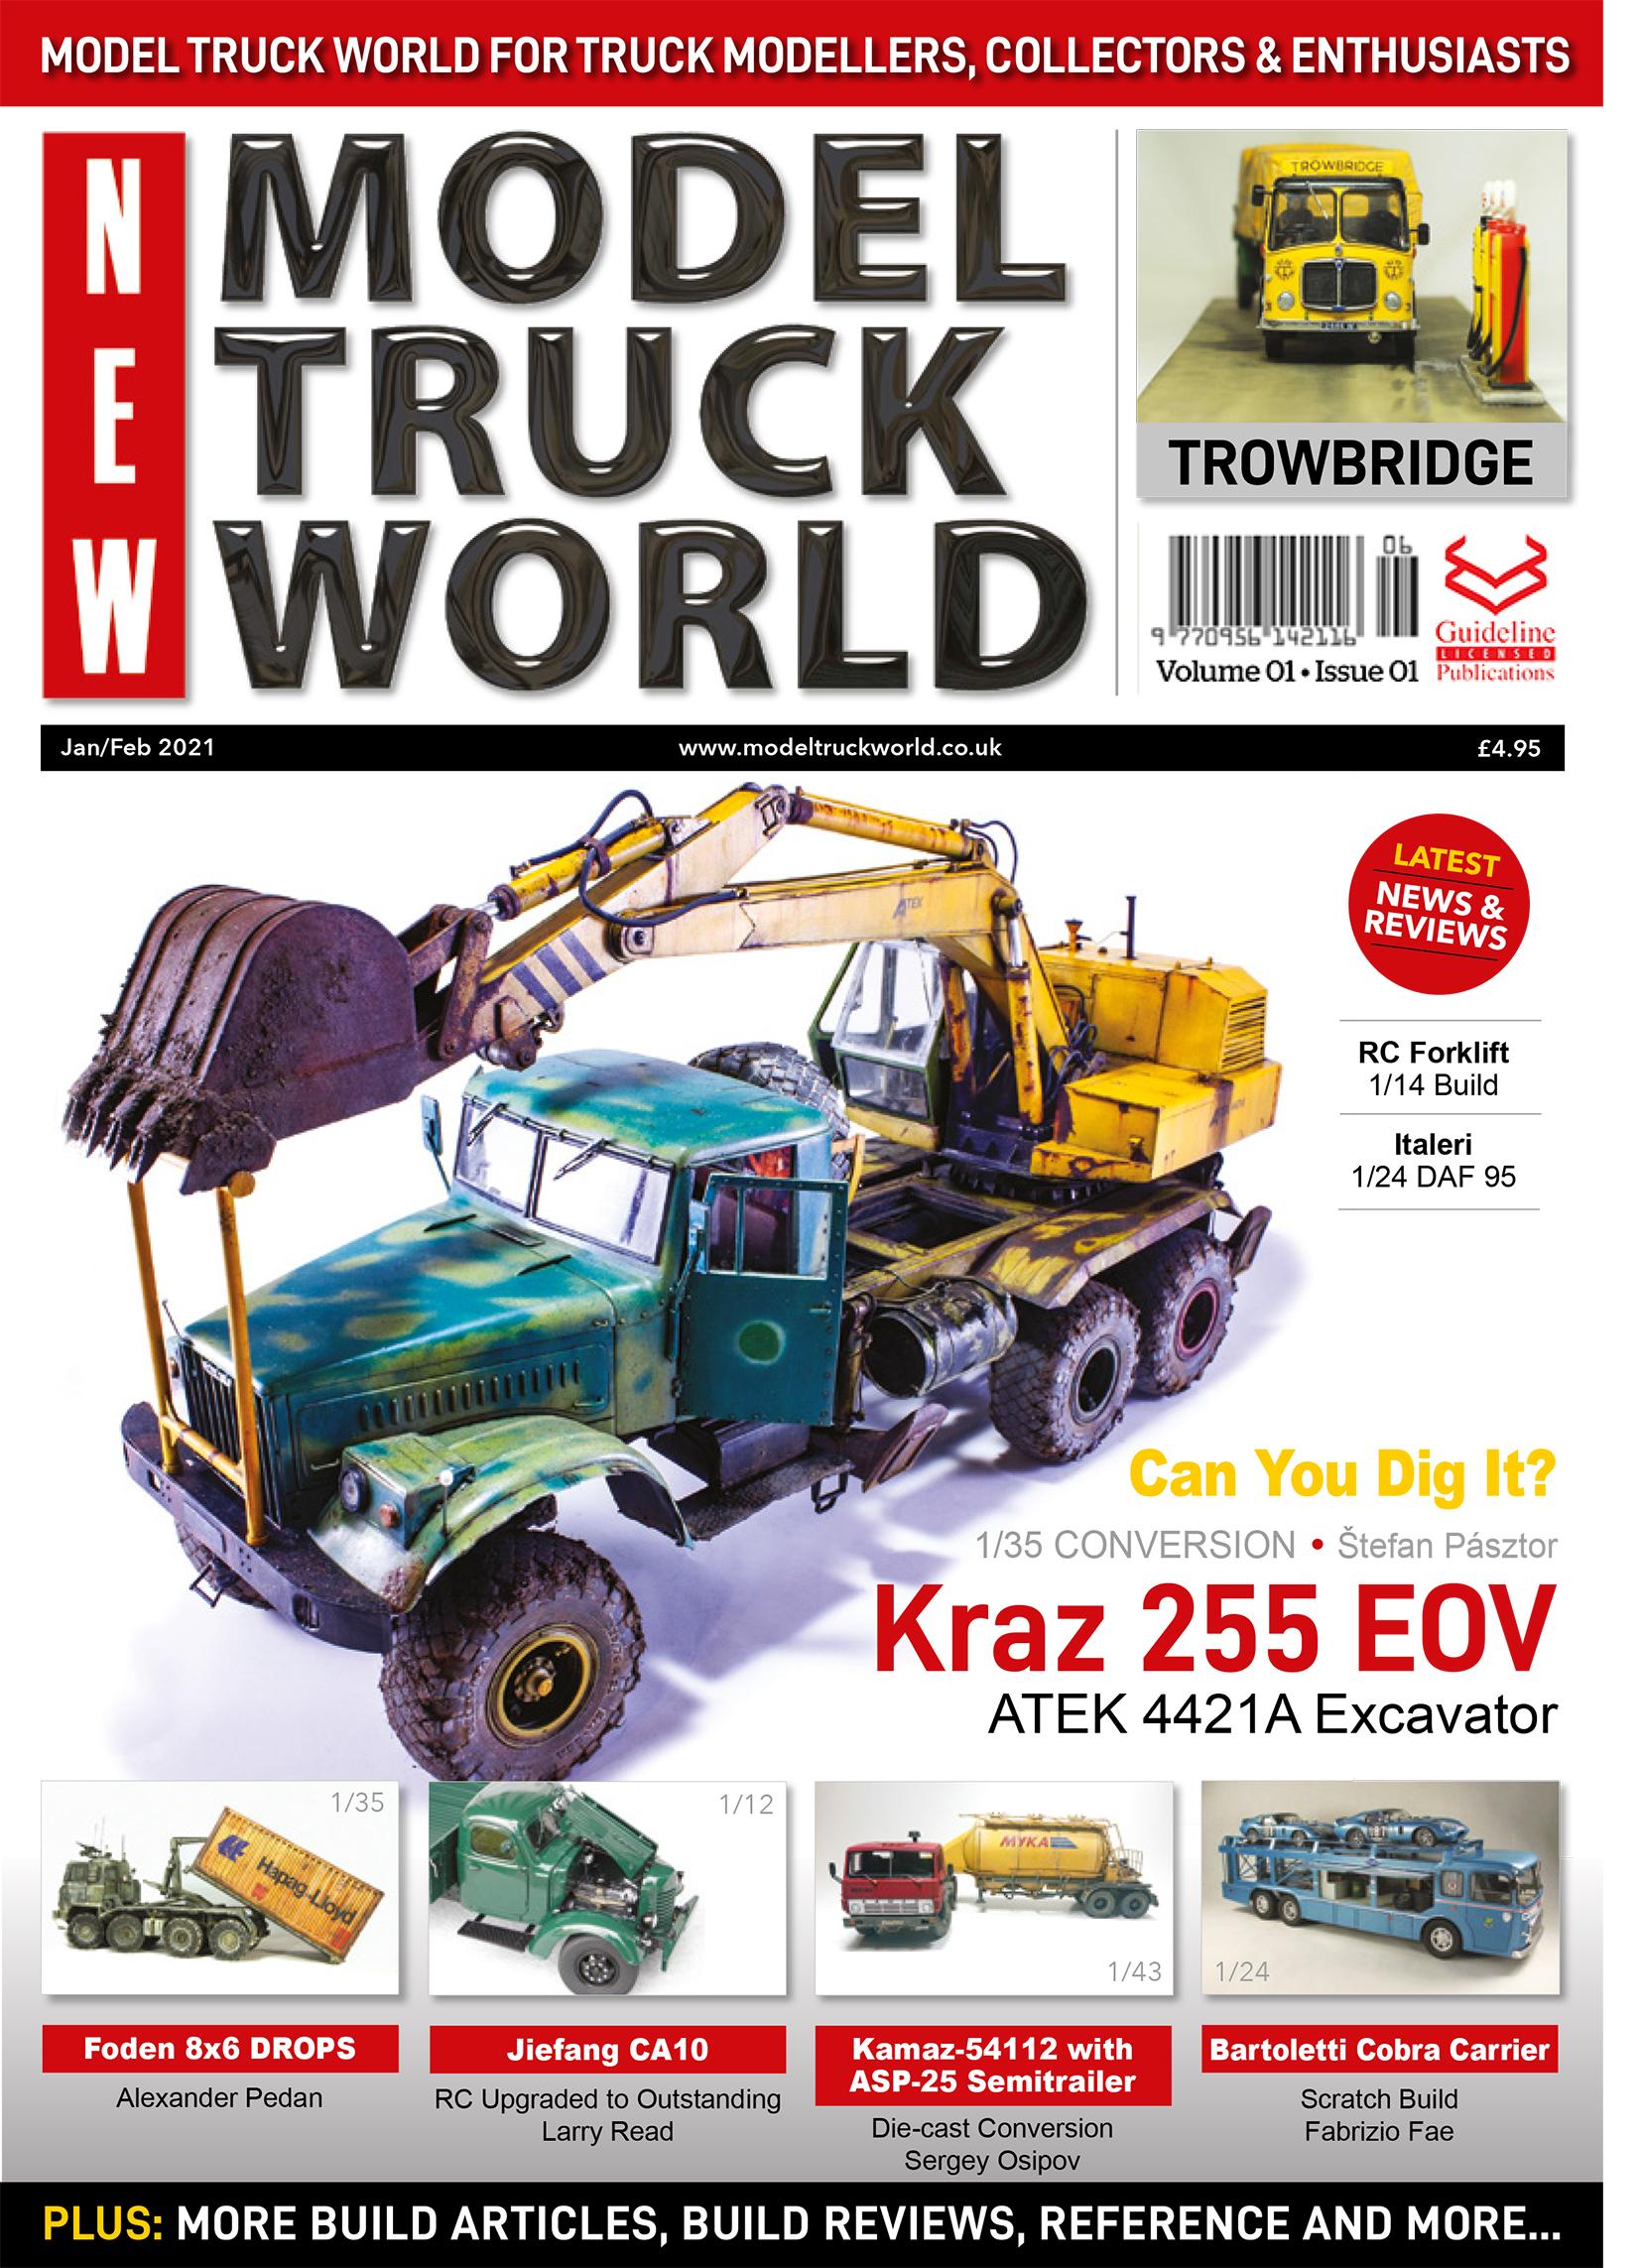 Guideline Publications New Model Truck World  -  Vol 01 - Issue 01  Jan/Feb 2021 On sale NOW